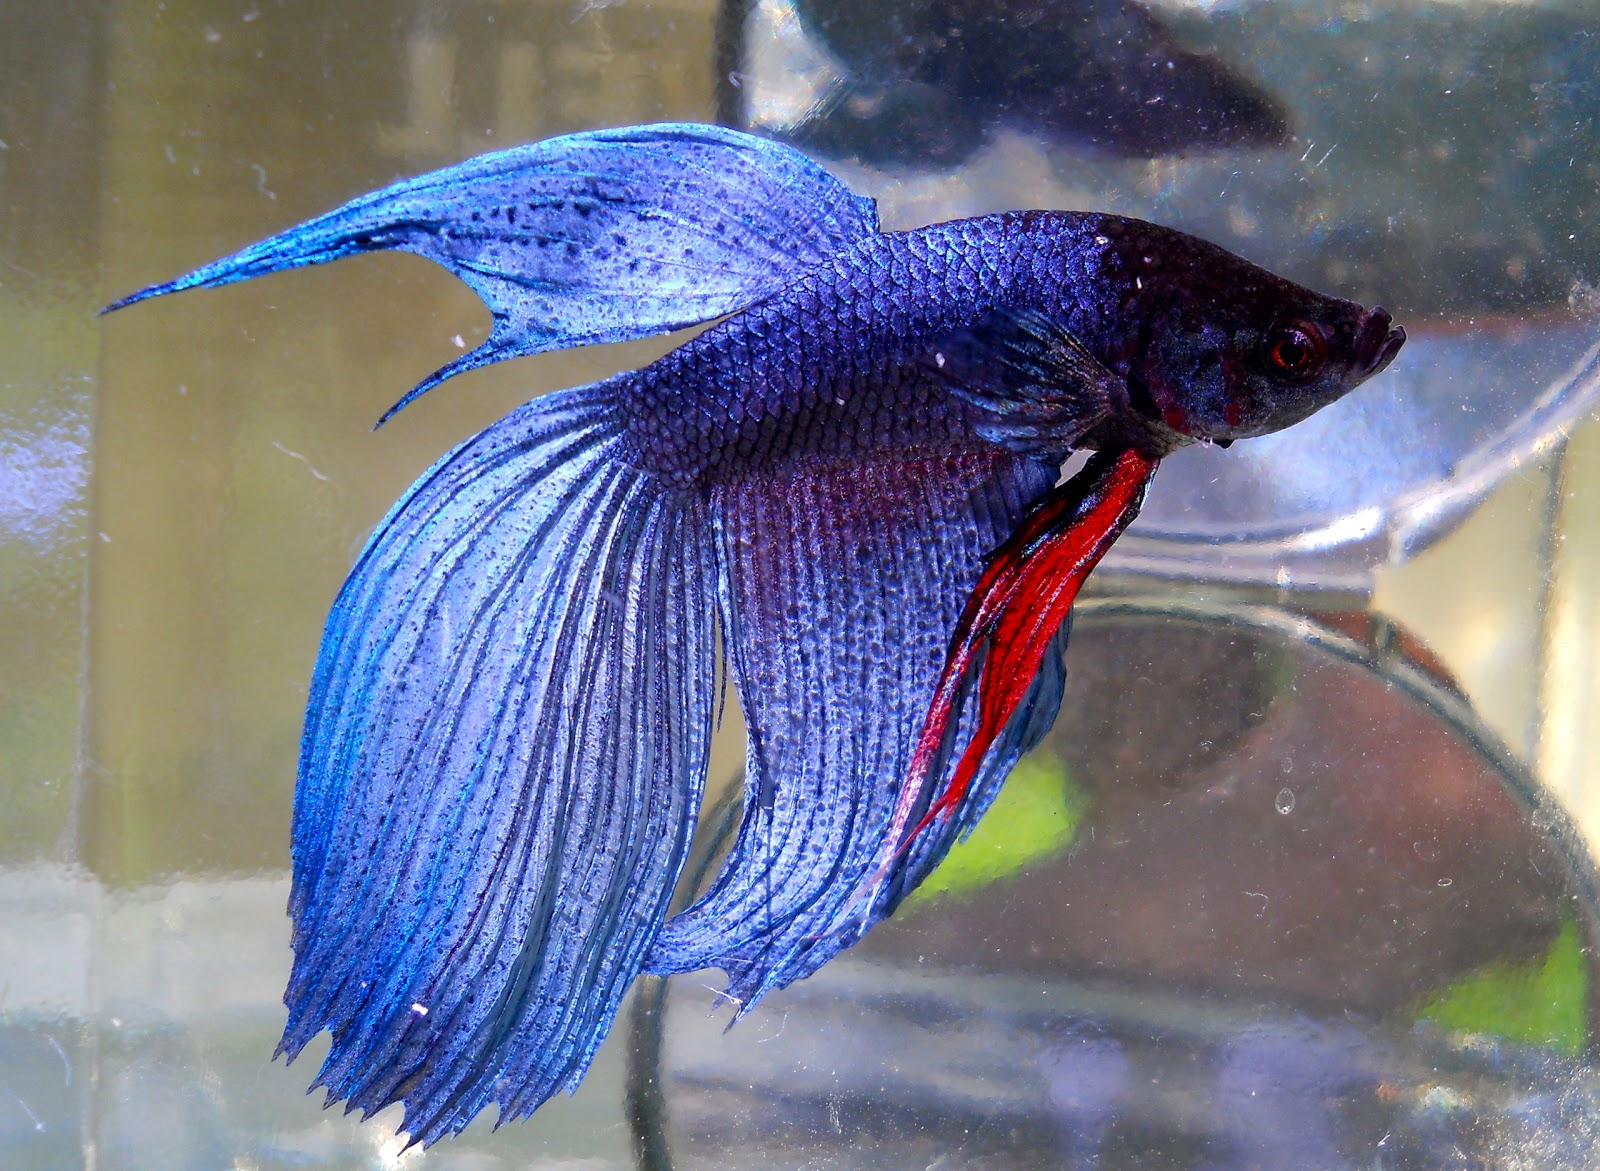 Betta fish tail types and patterns betta fish questions for Female betta fish names